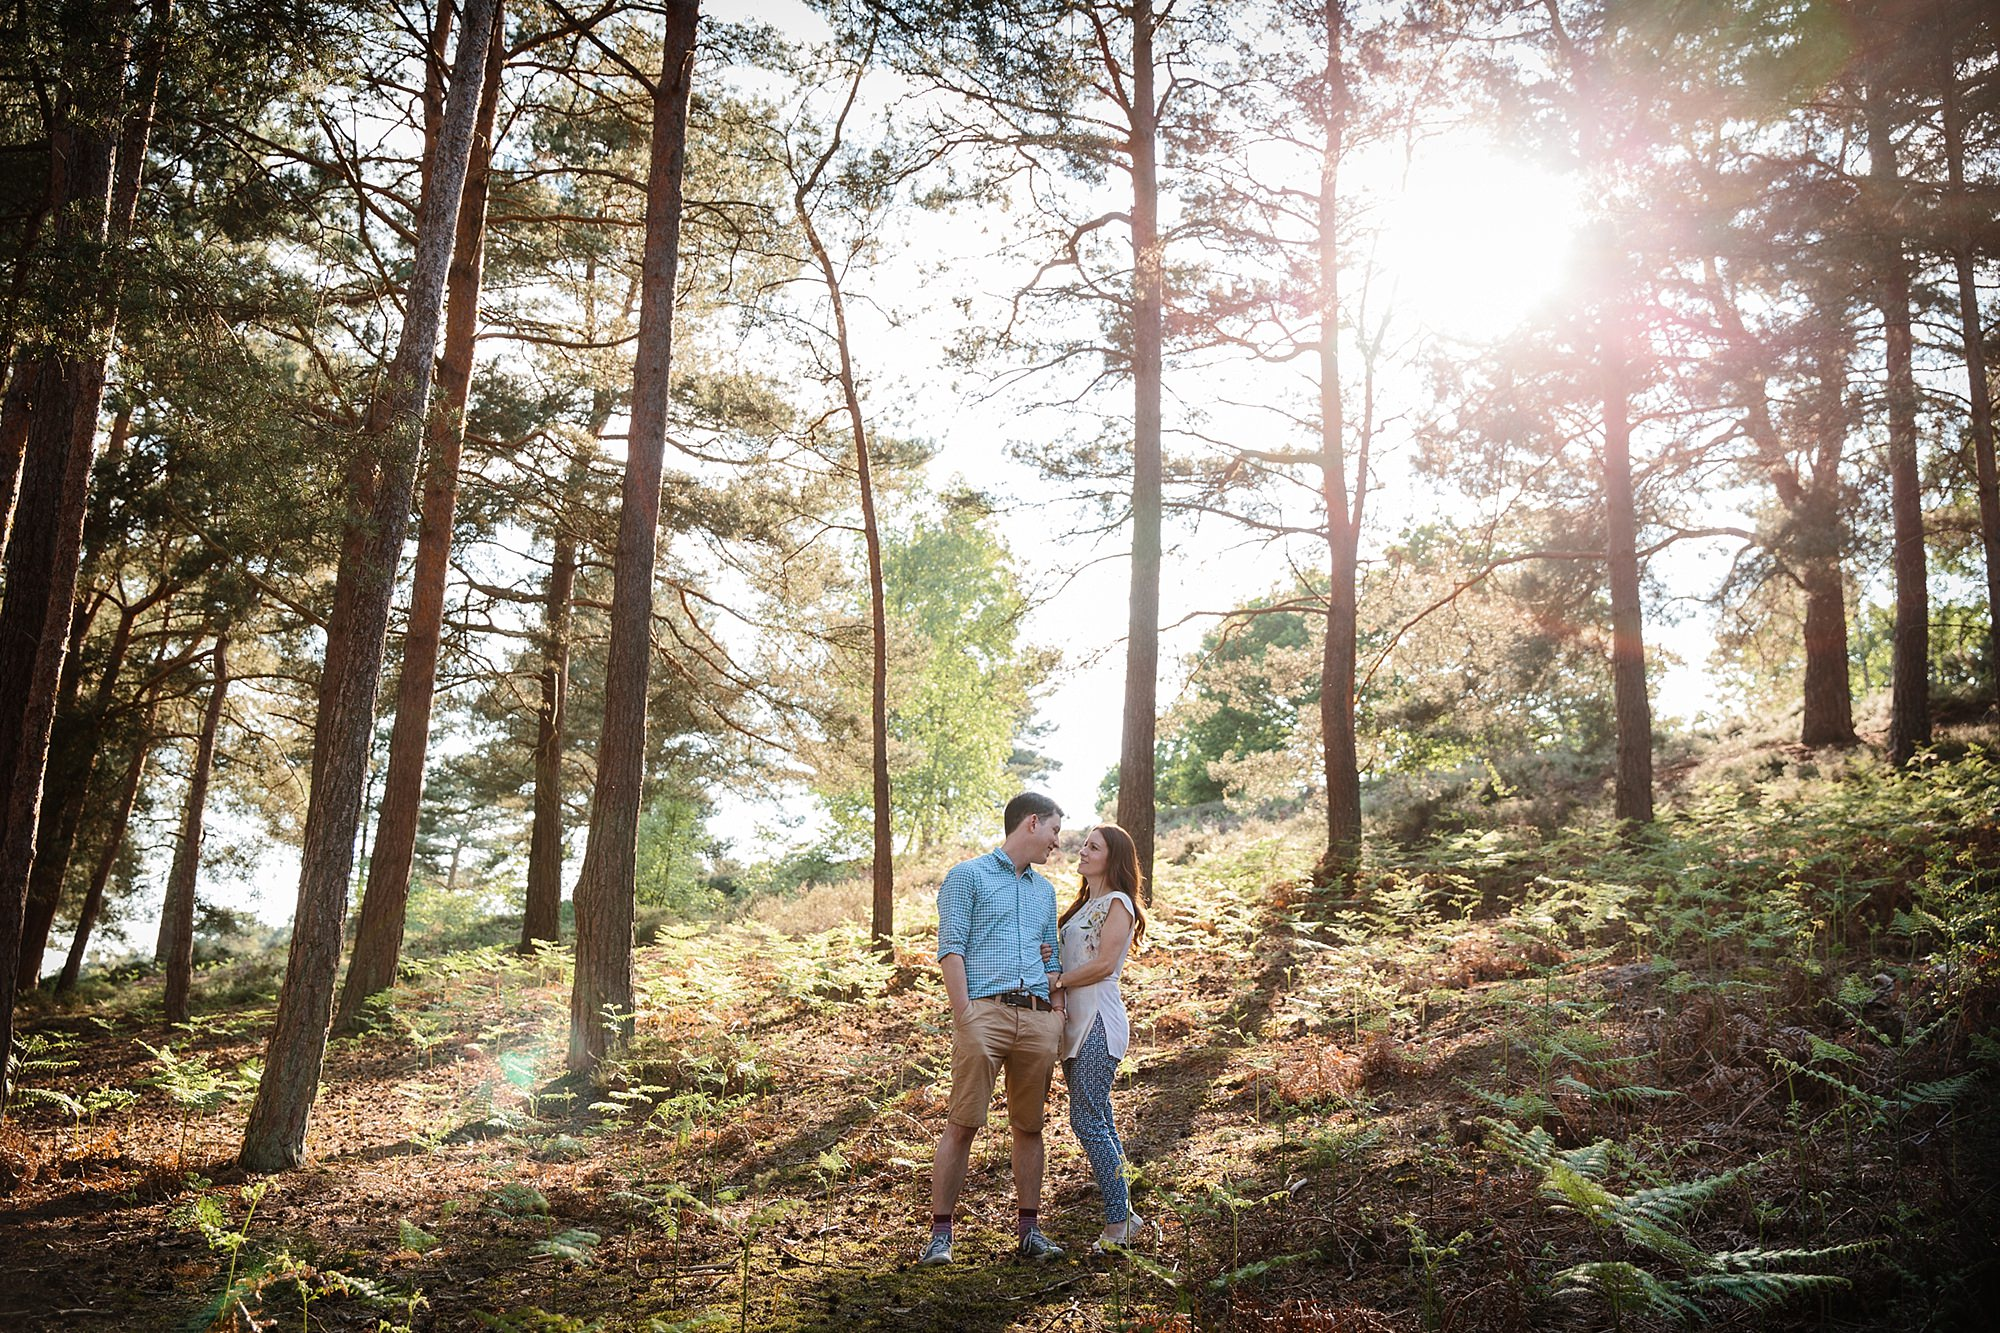 Farnham engagement photography portrait of couple together in forest